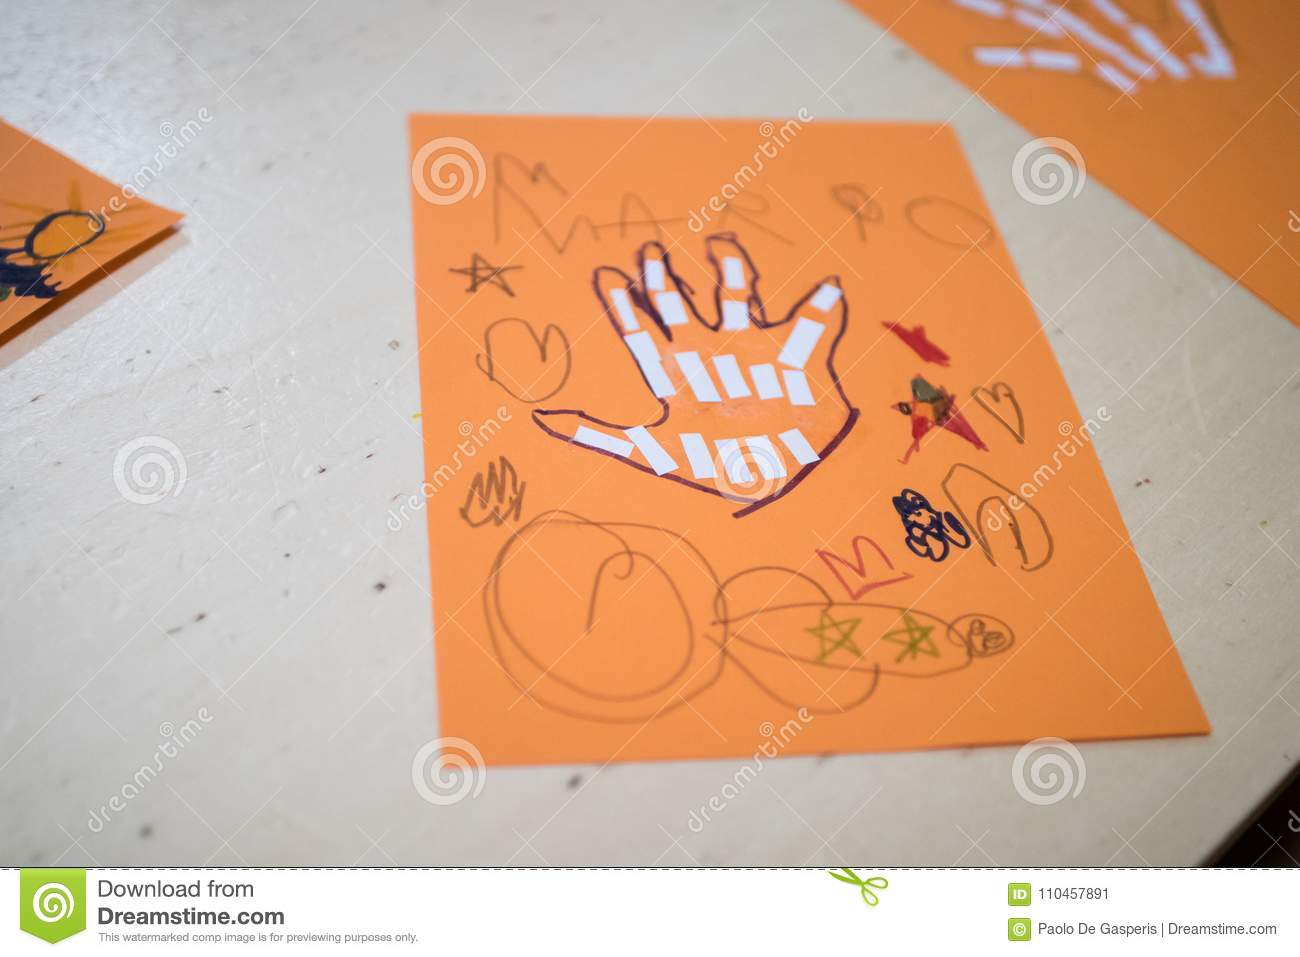 scientific activity for children, drawing and collage of the bones of the hand. On a decorated orange sheet a hand was drawn and